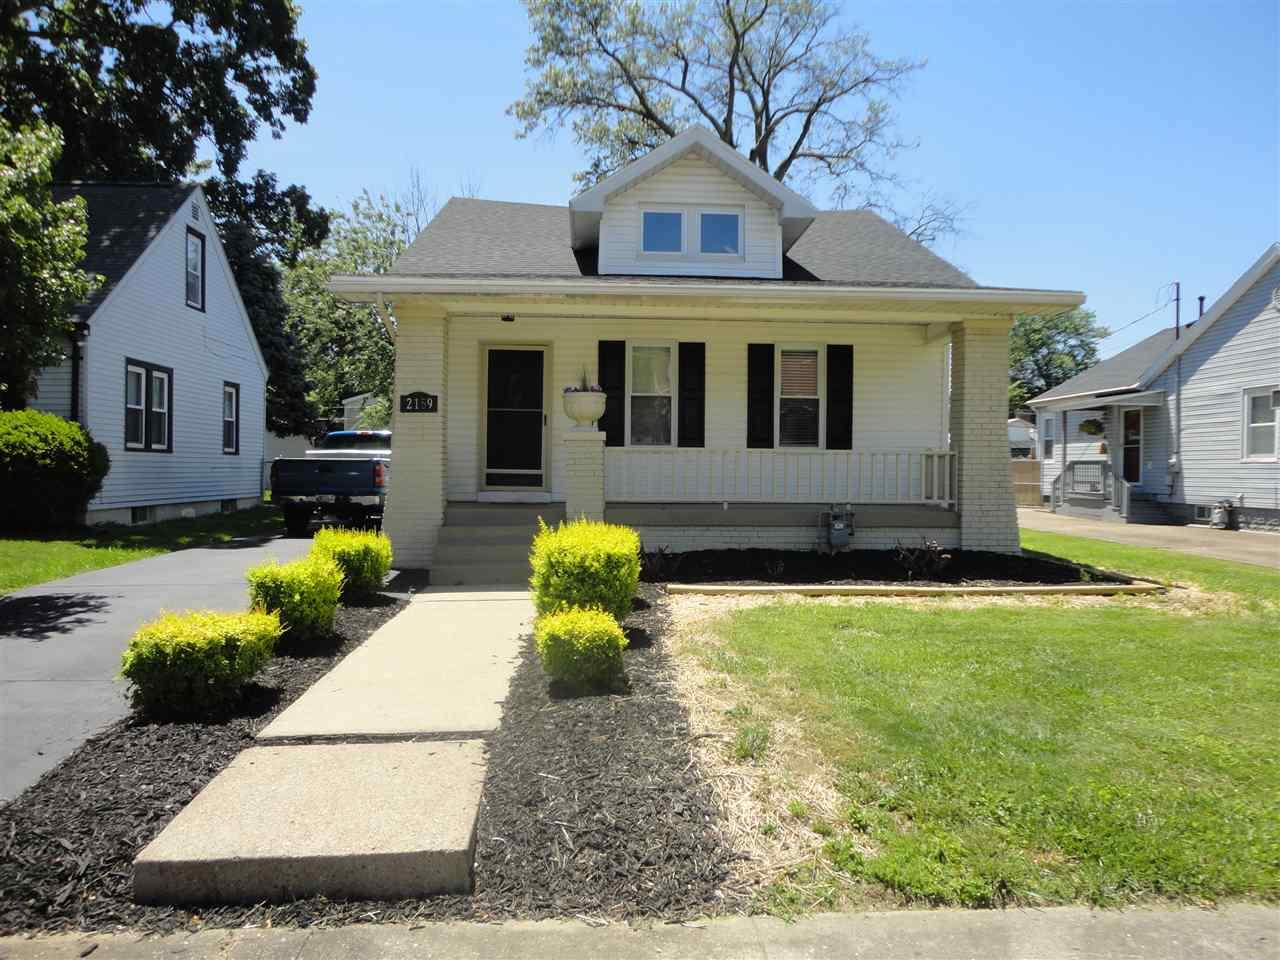 2159 E Blackford, Evansville, IN 47714